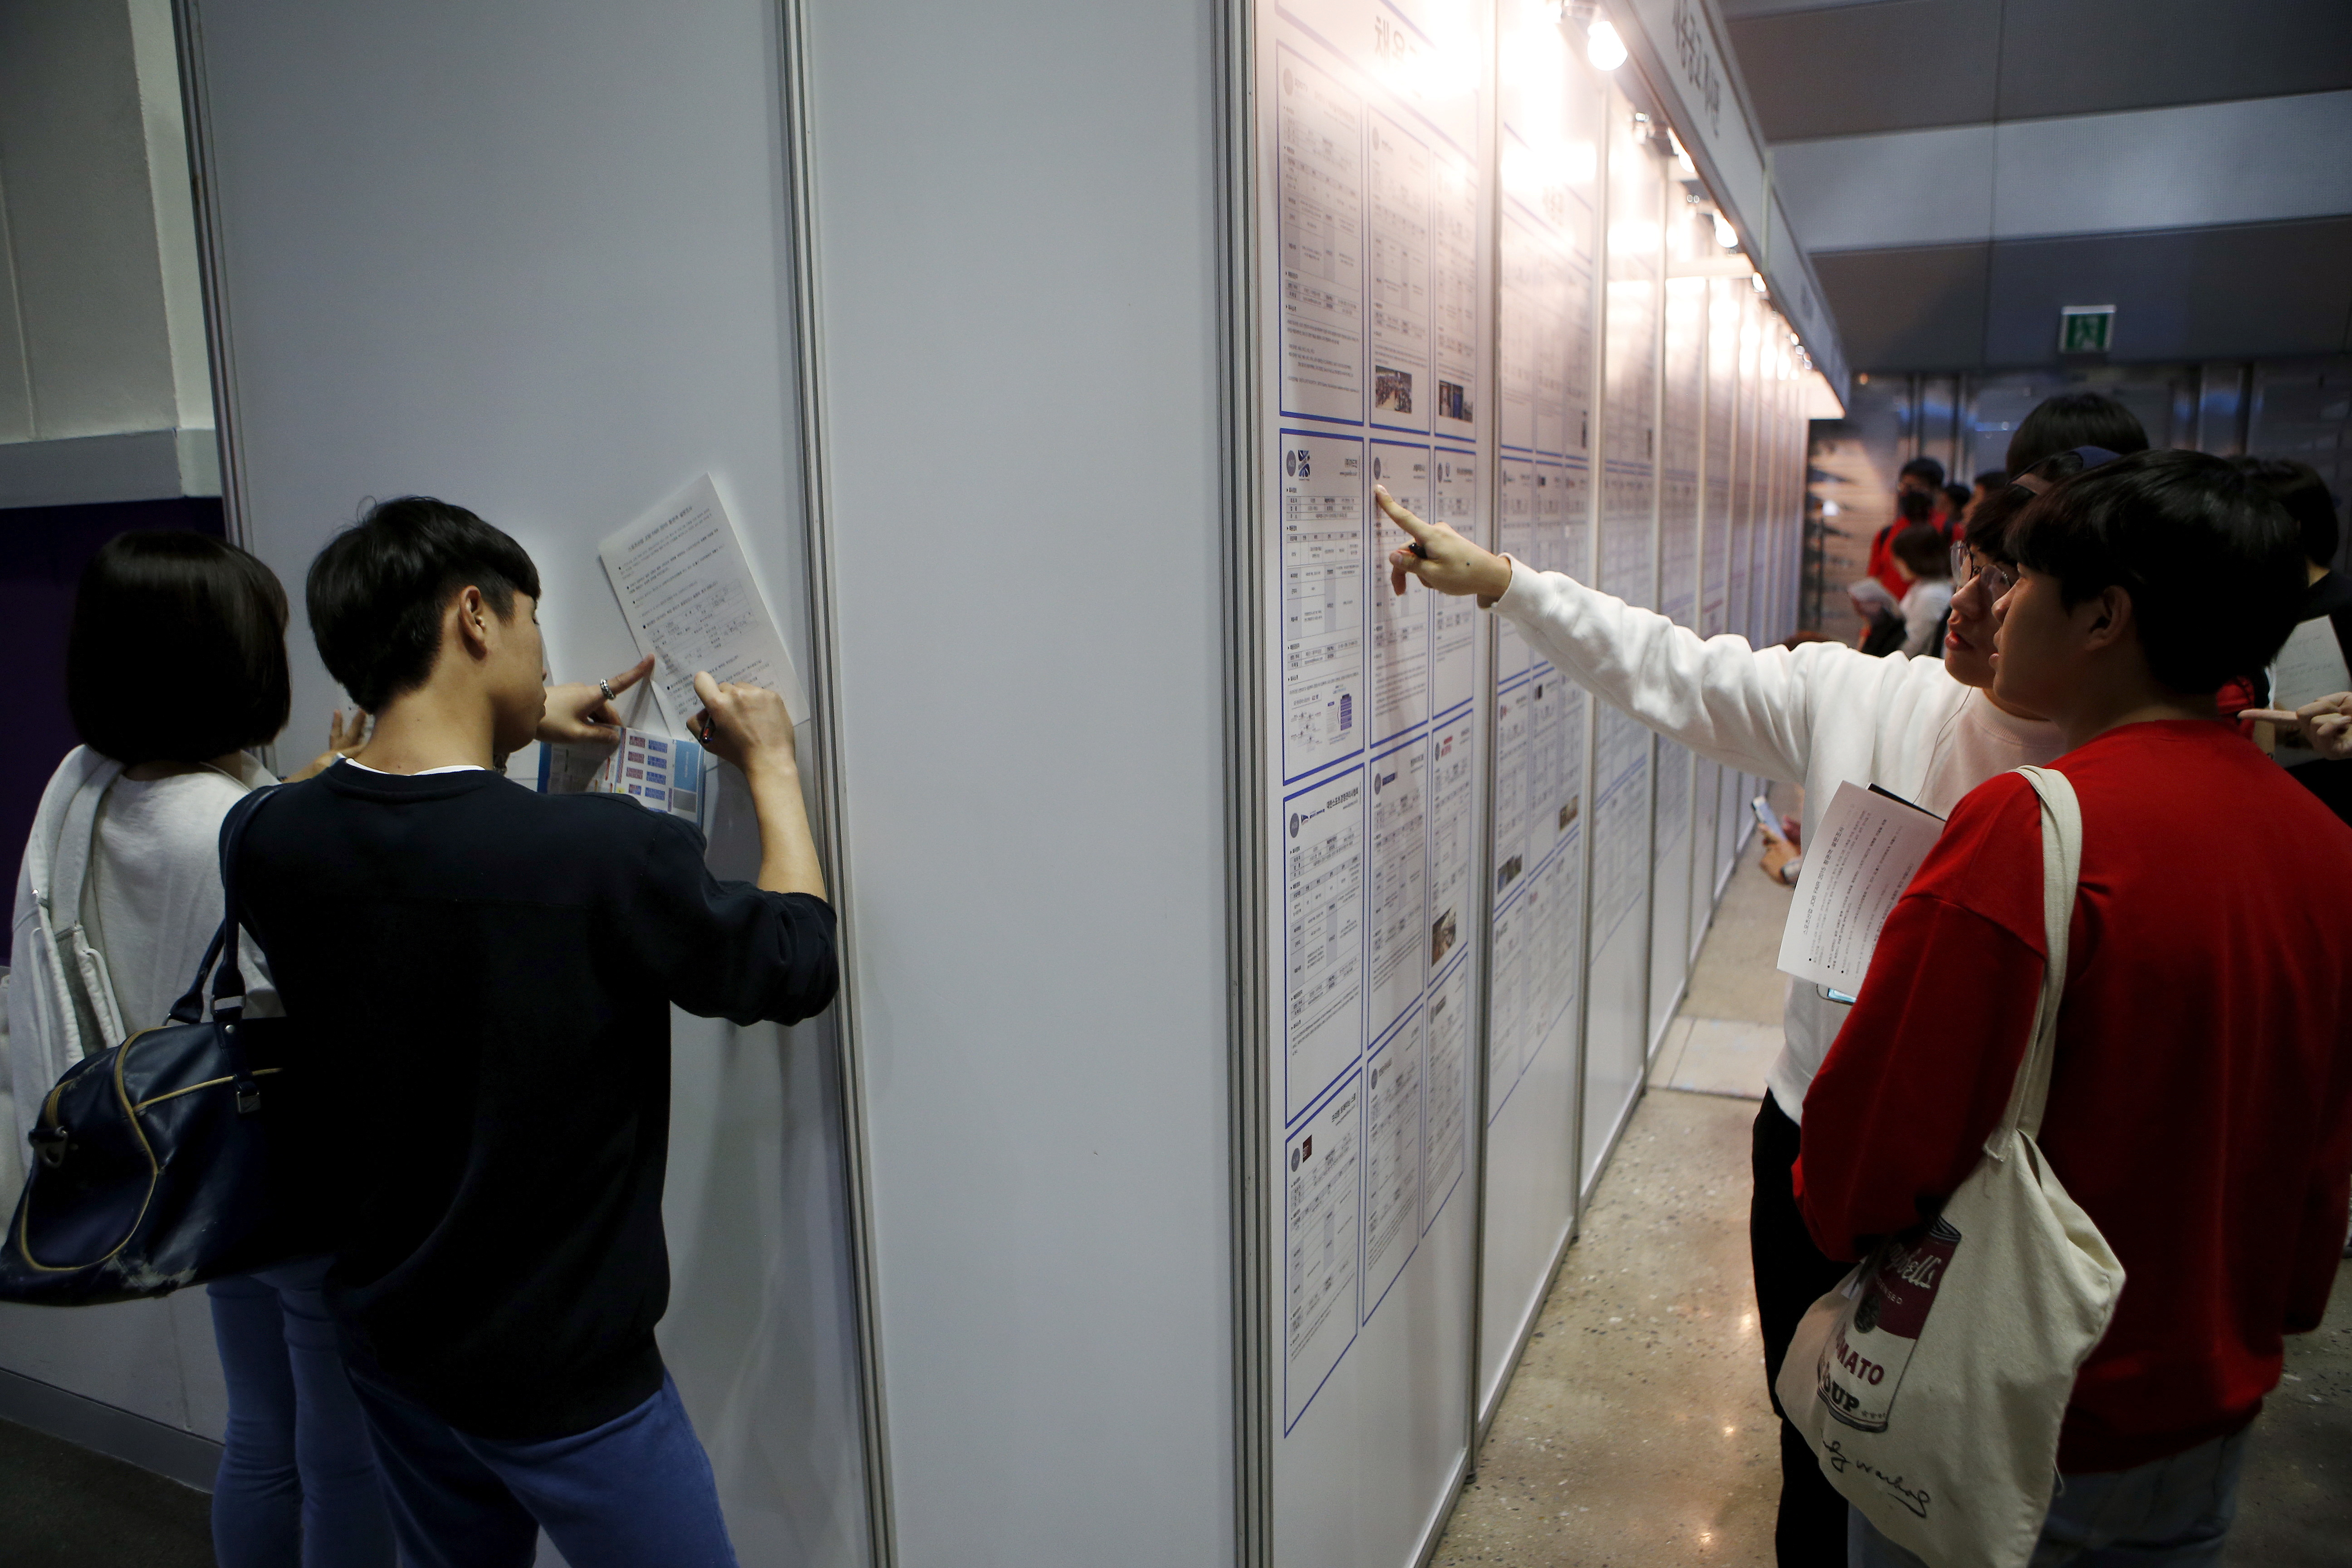 University students (R) look at recruiting information as others write on documents at an employment fair in Seoul, South Korea, September 23, 2015. REUTERS/Kim Hong-Ji/File Photo